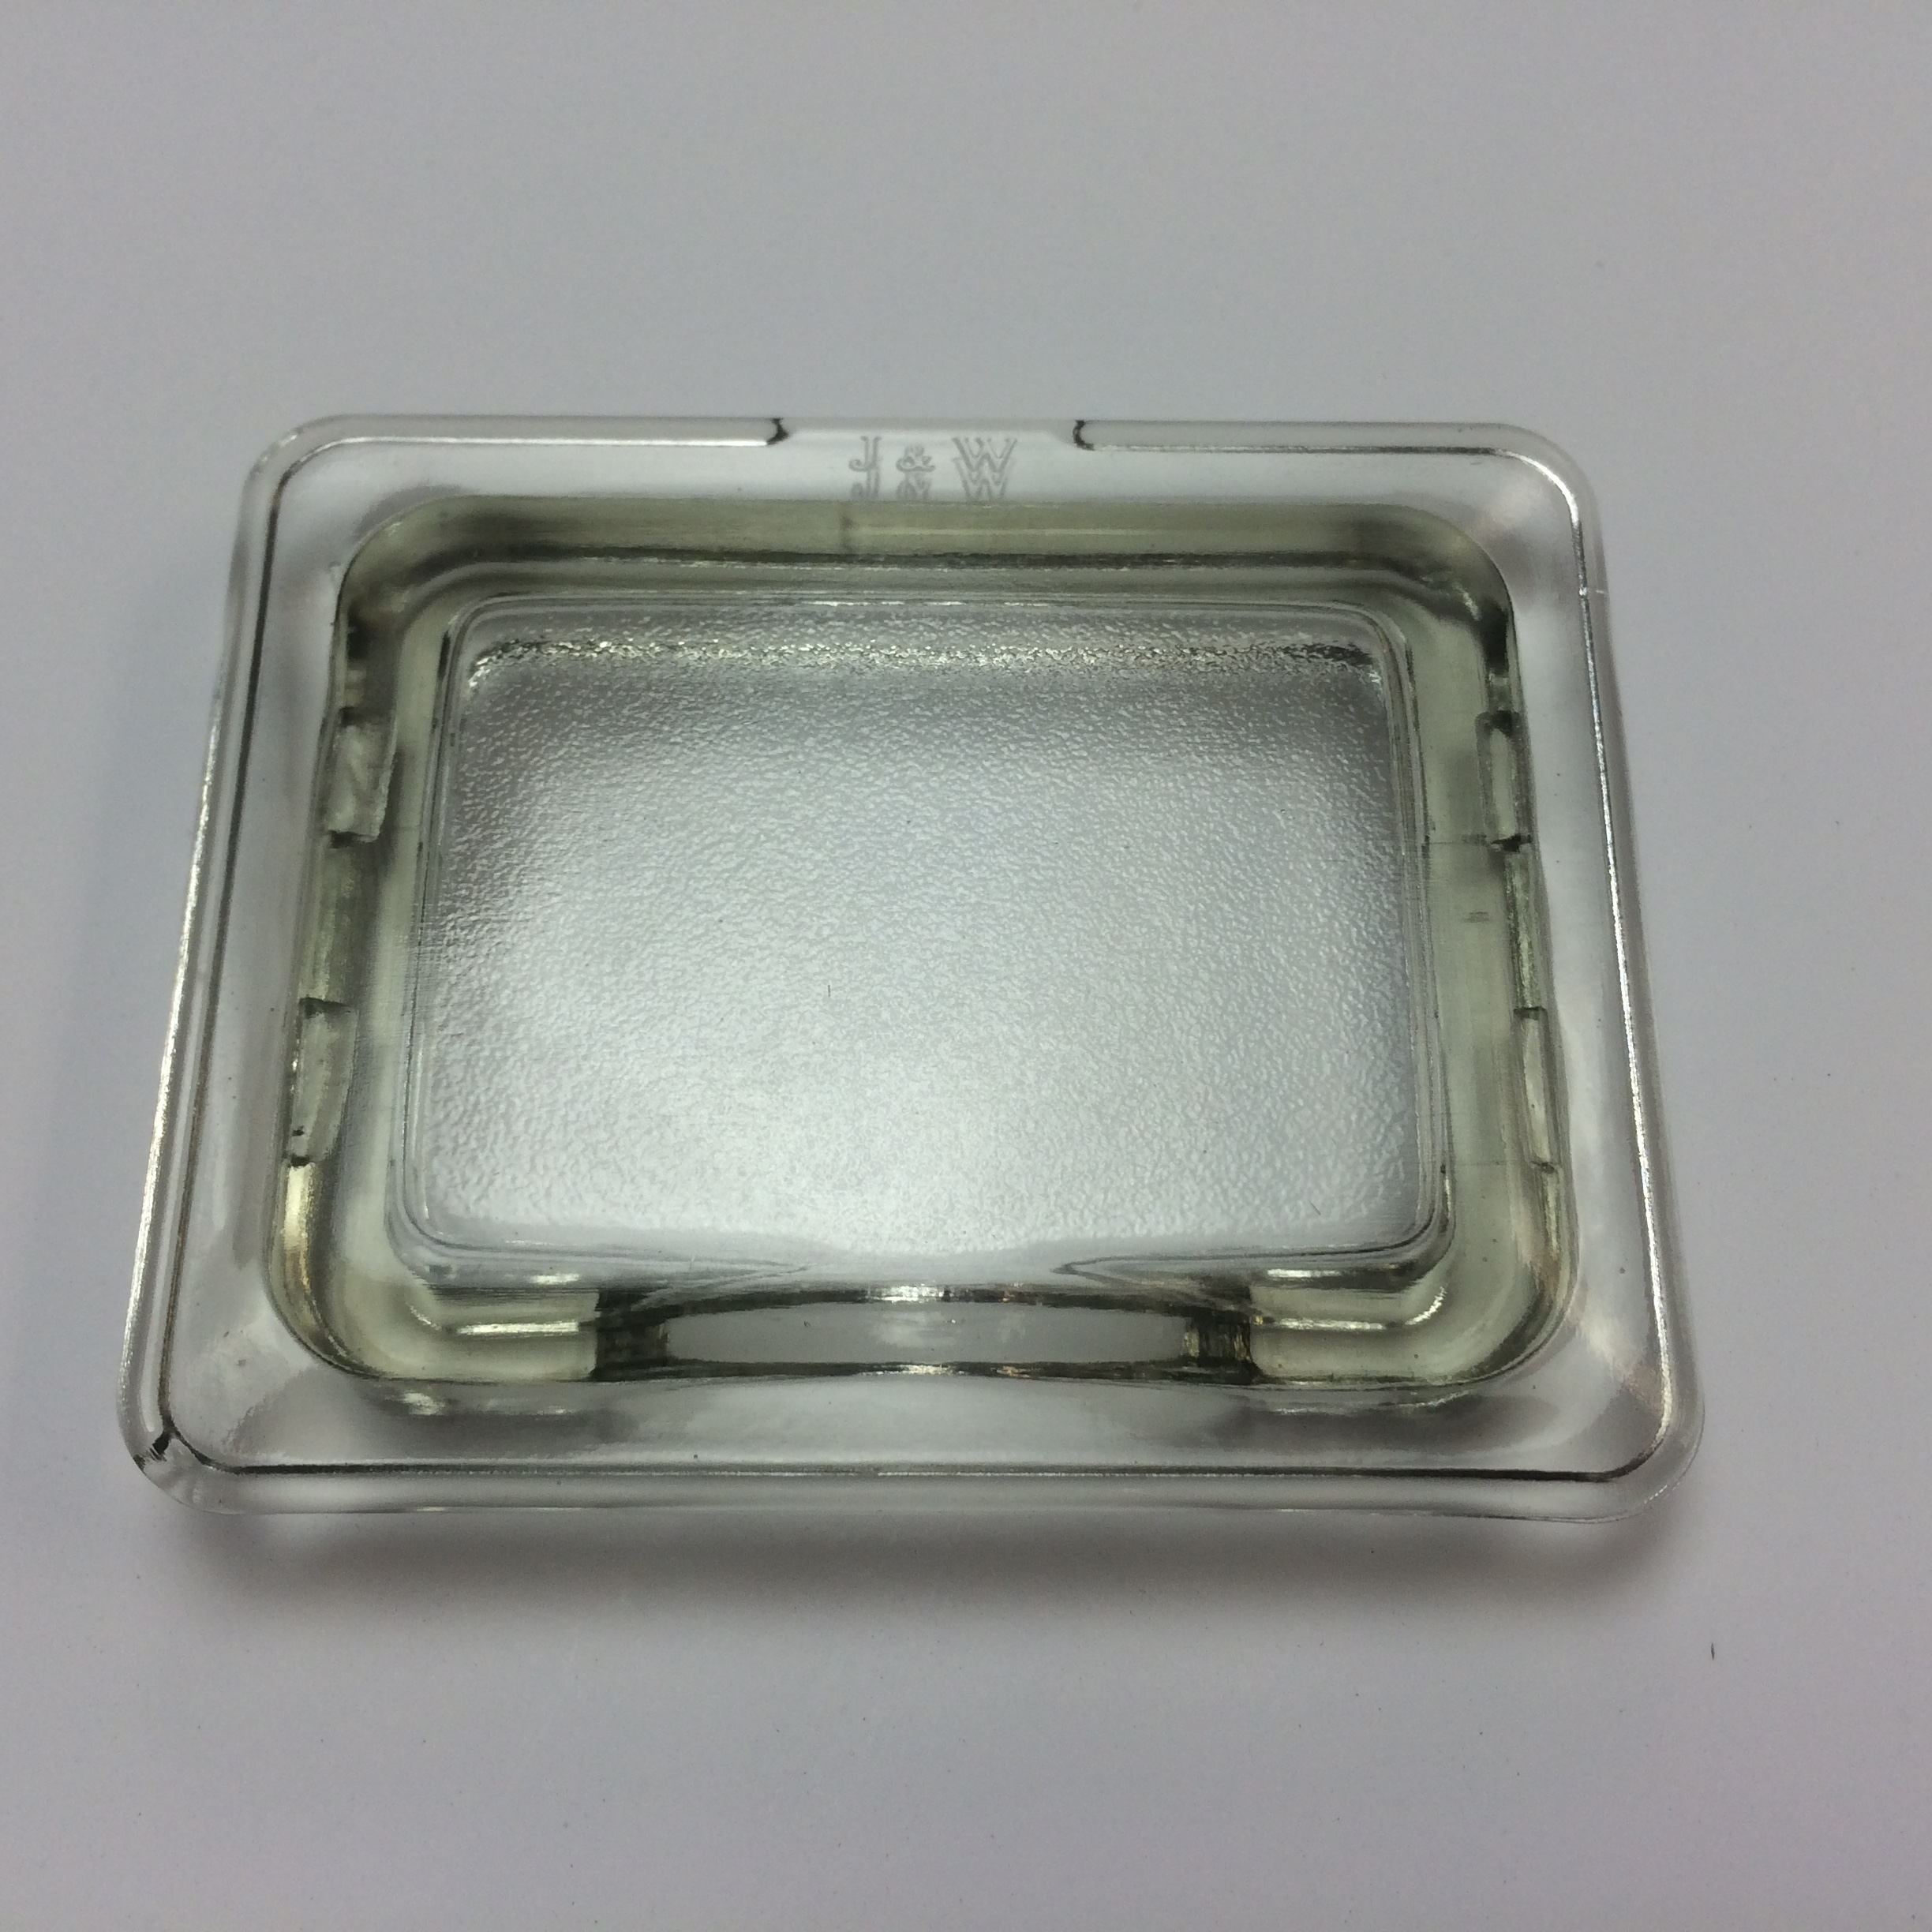 Interior Light Glass Replacement for Summerset Sizzler Pro Series, LIGHT GLASS SIZPRO